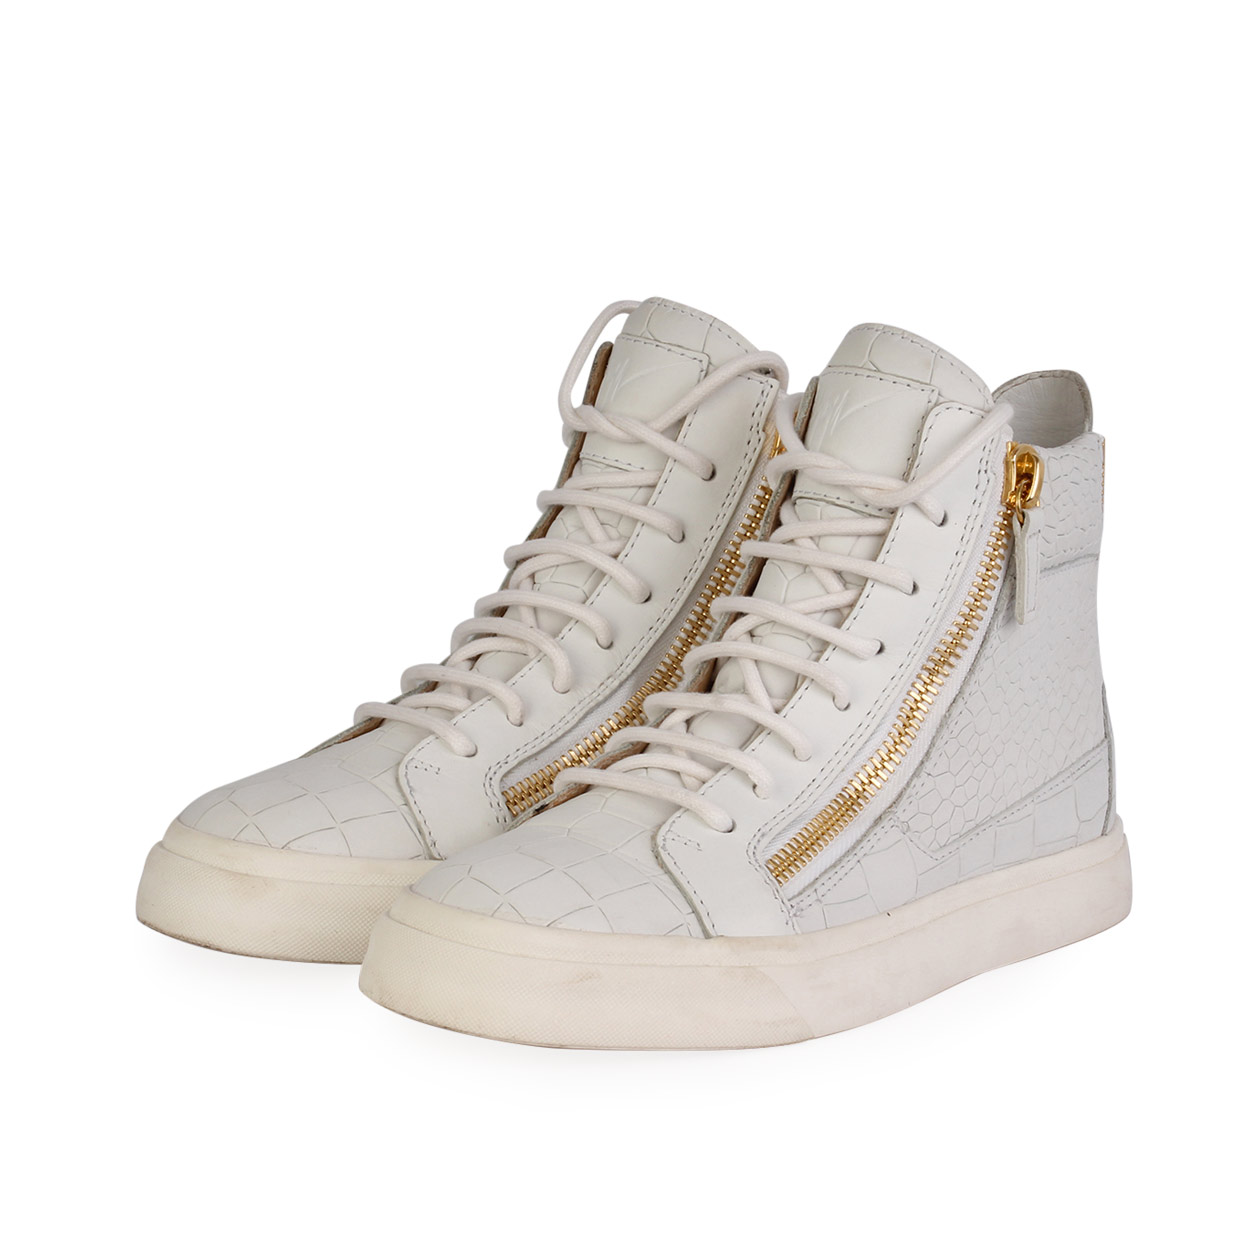 GIUSEPPE ZANOTTI Leather High Top Sneakers White - S: 36 ...